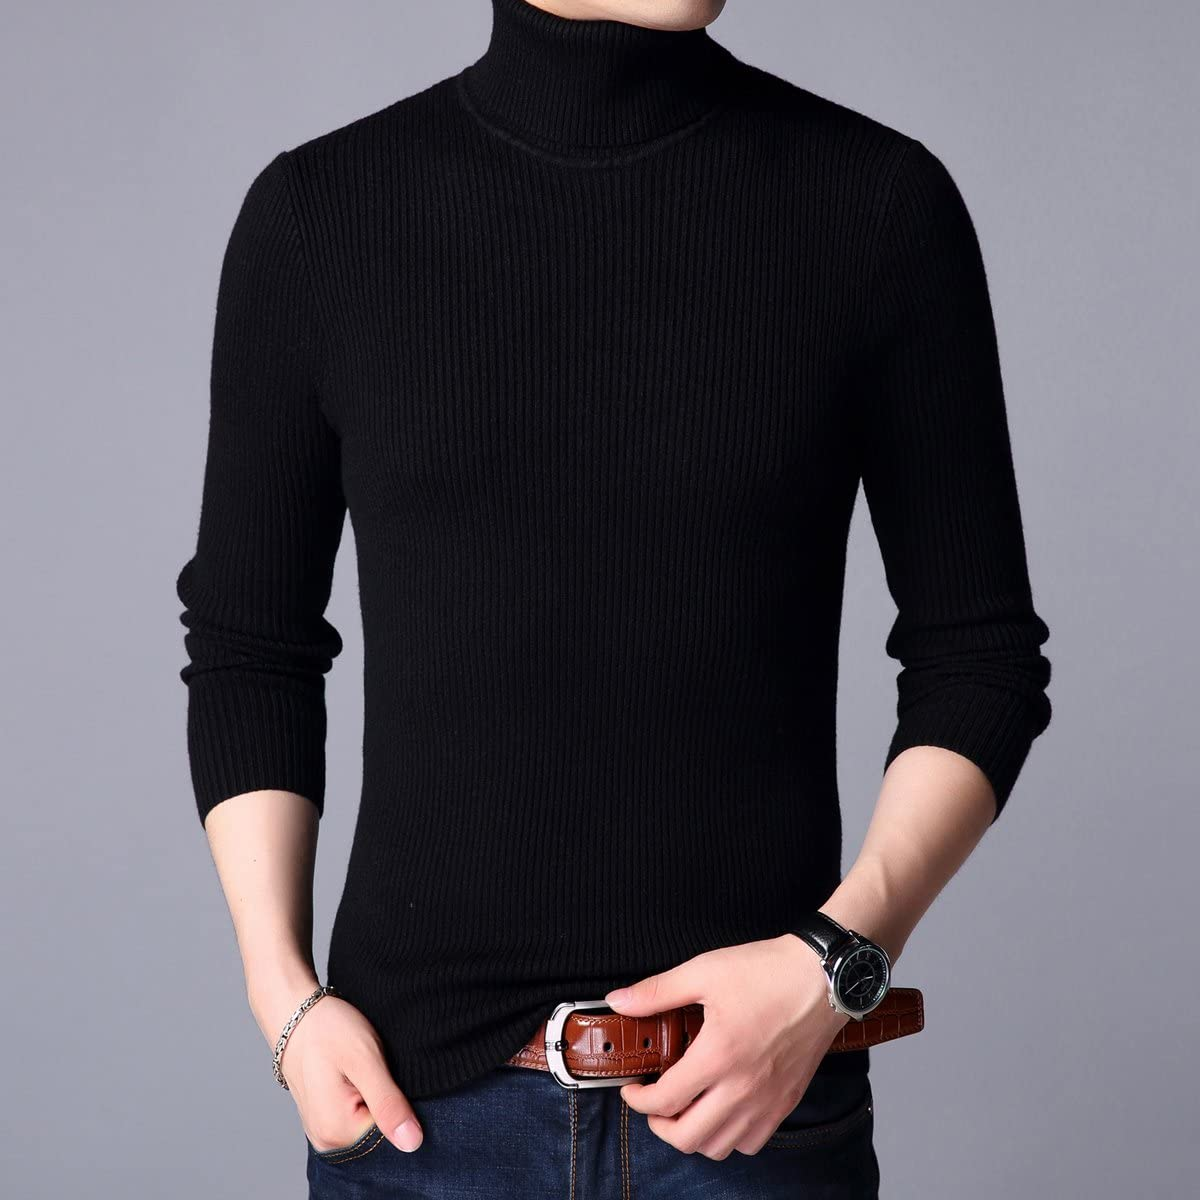 Jiuhila Mens Casual Wool Cashmere Knitted Sweater Long Sleeve Turtleneck Pullover Tops